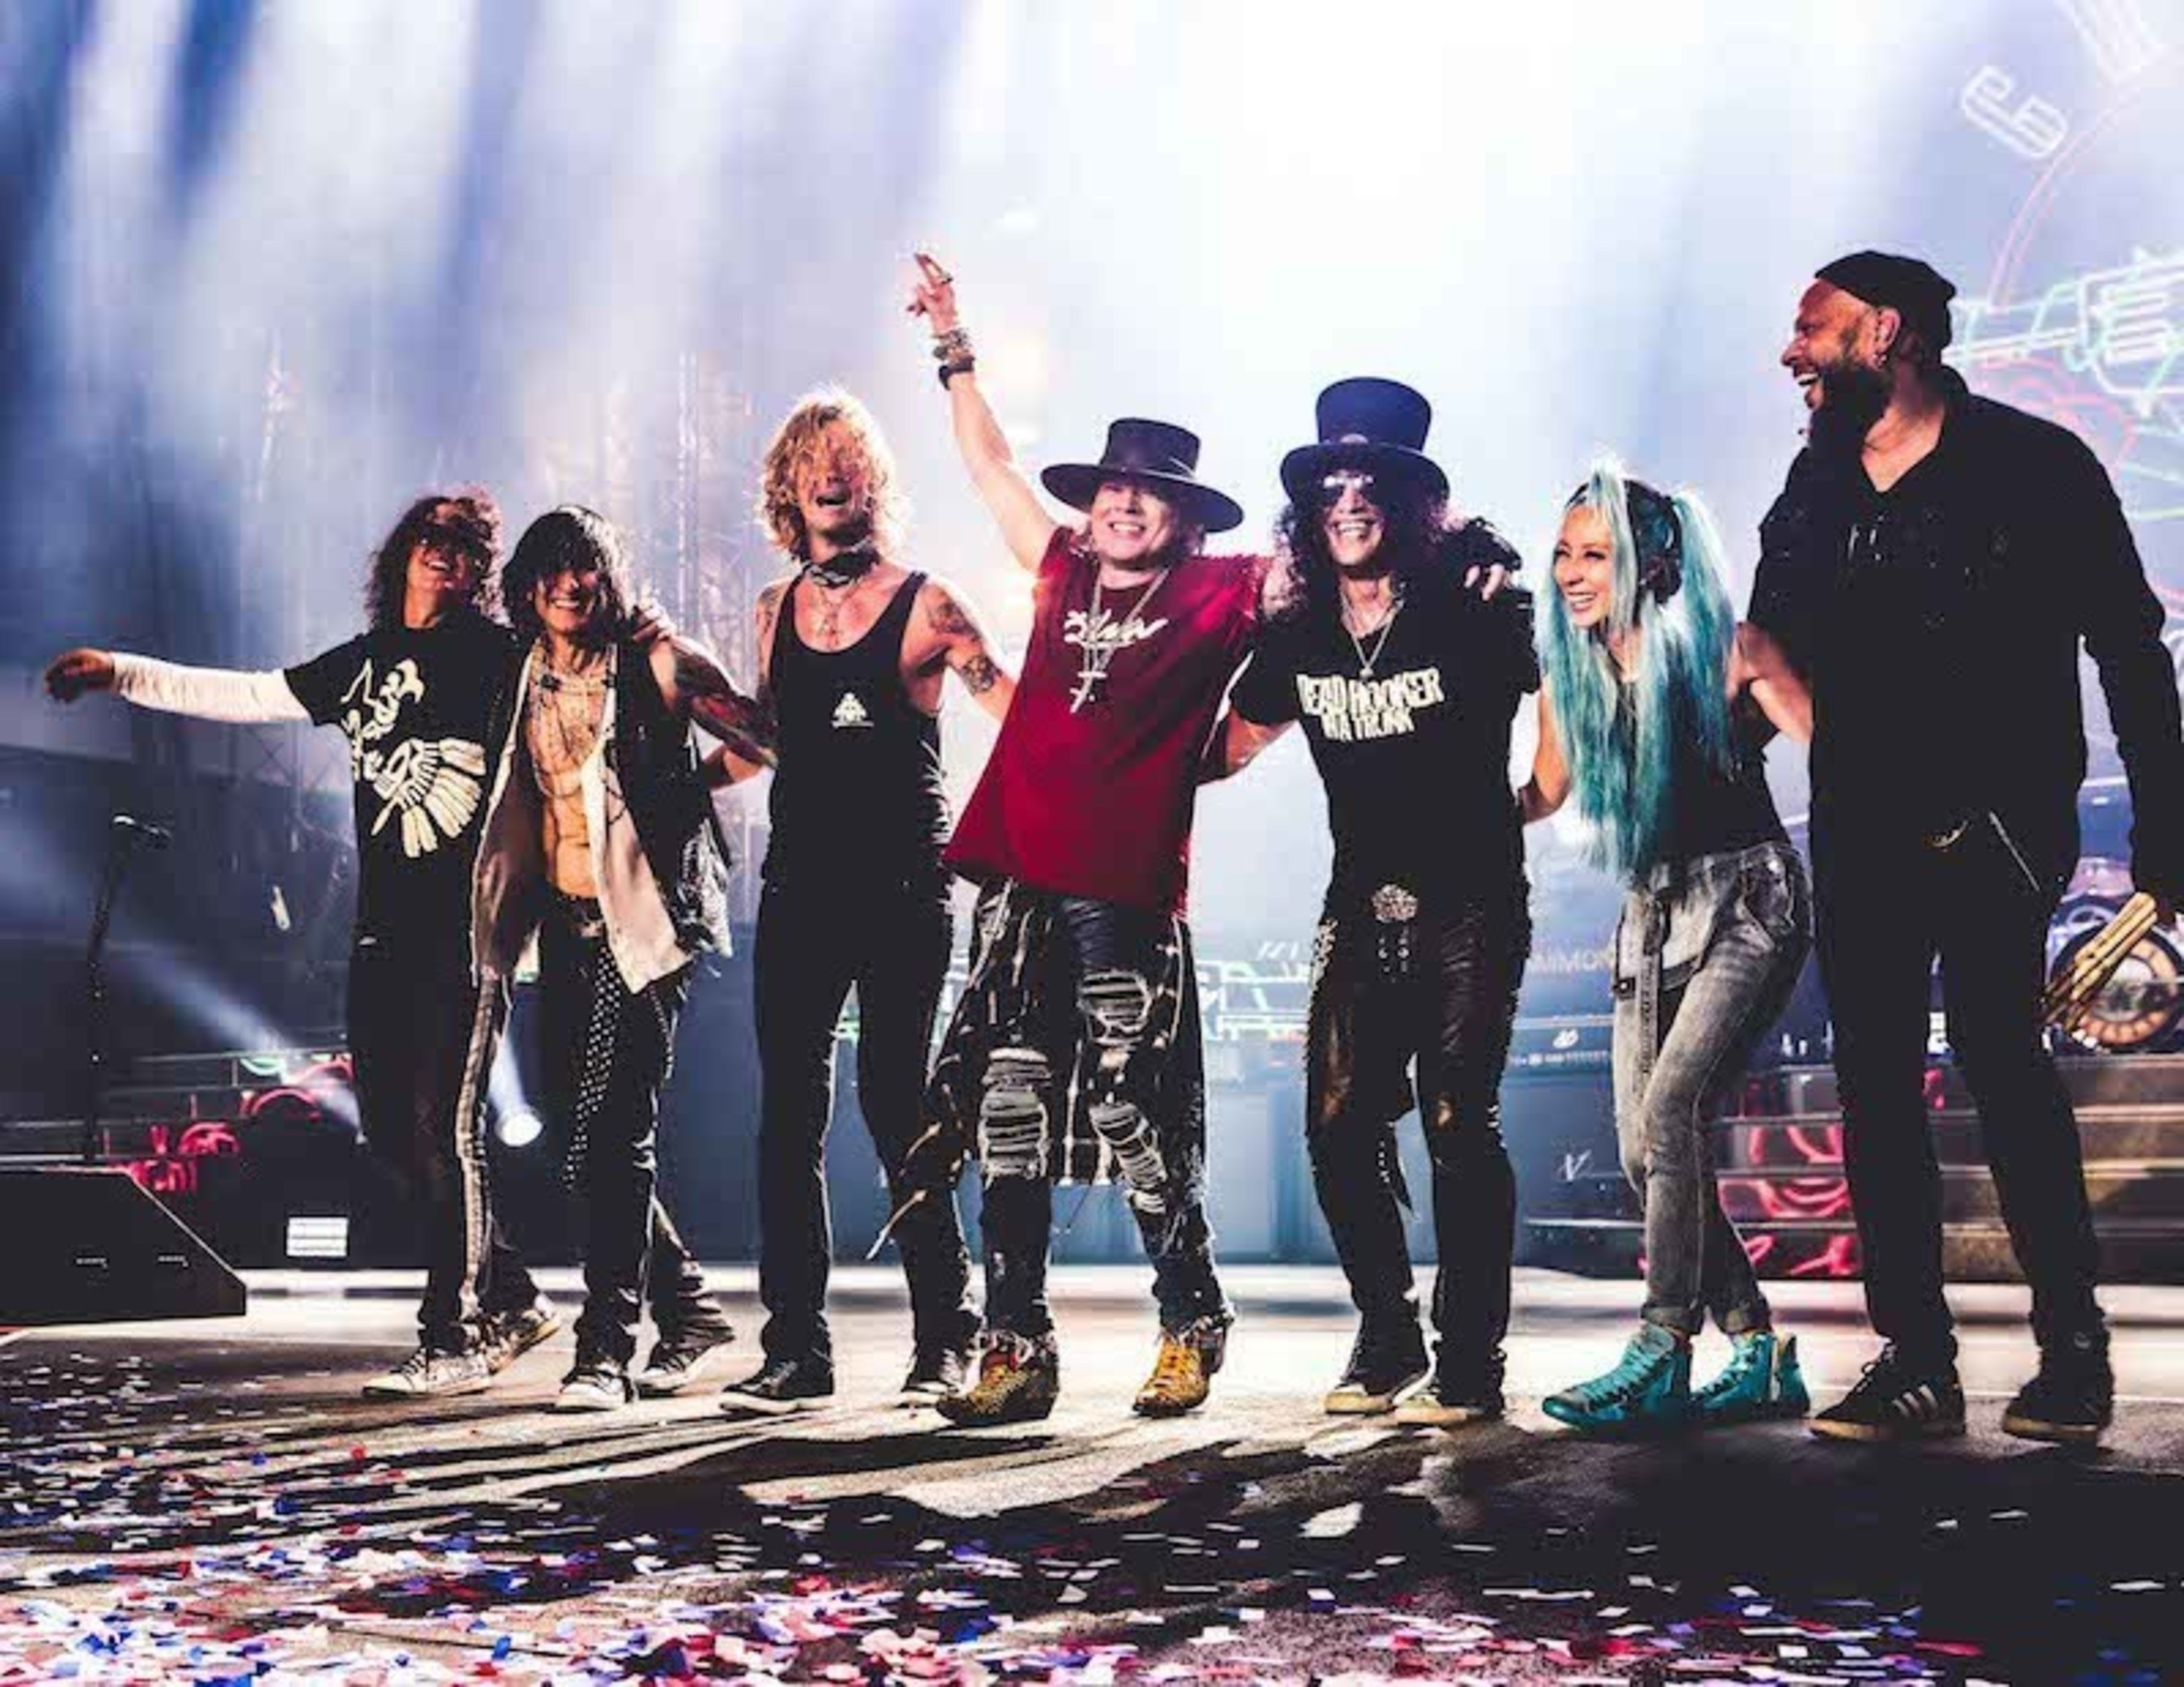 Guns N' Roses Sells More Than 1 Million Tickets In 24 Hours, Tickets On Sale Tomorrow For 2017 US Dates Of 'Not In This Lifetime' Tour